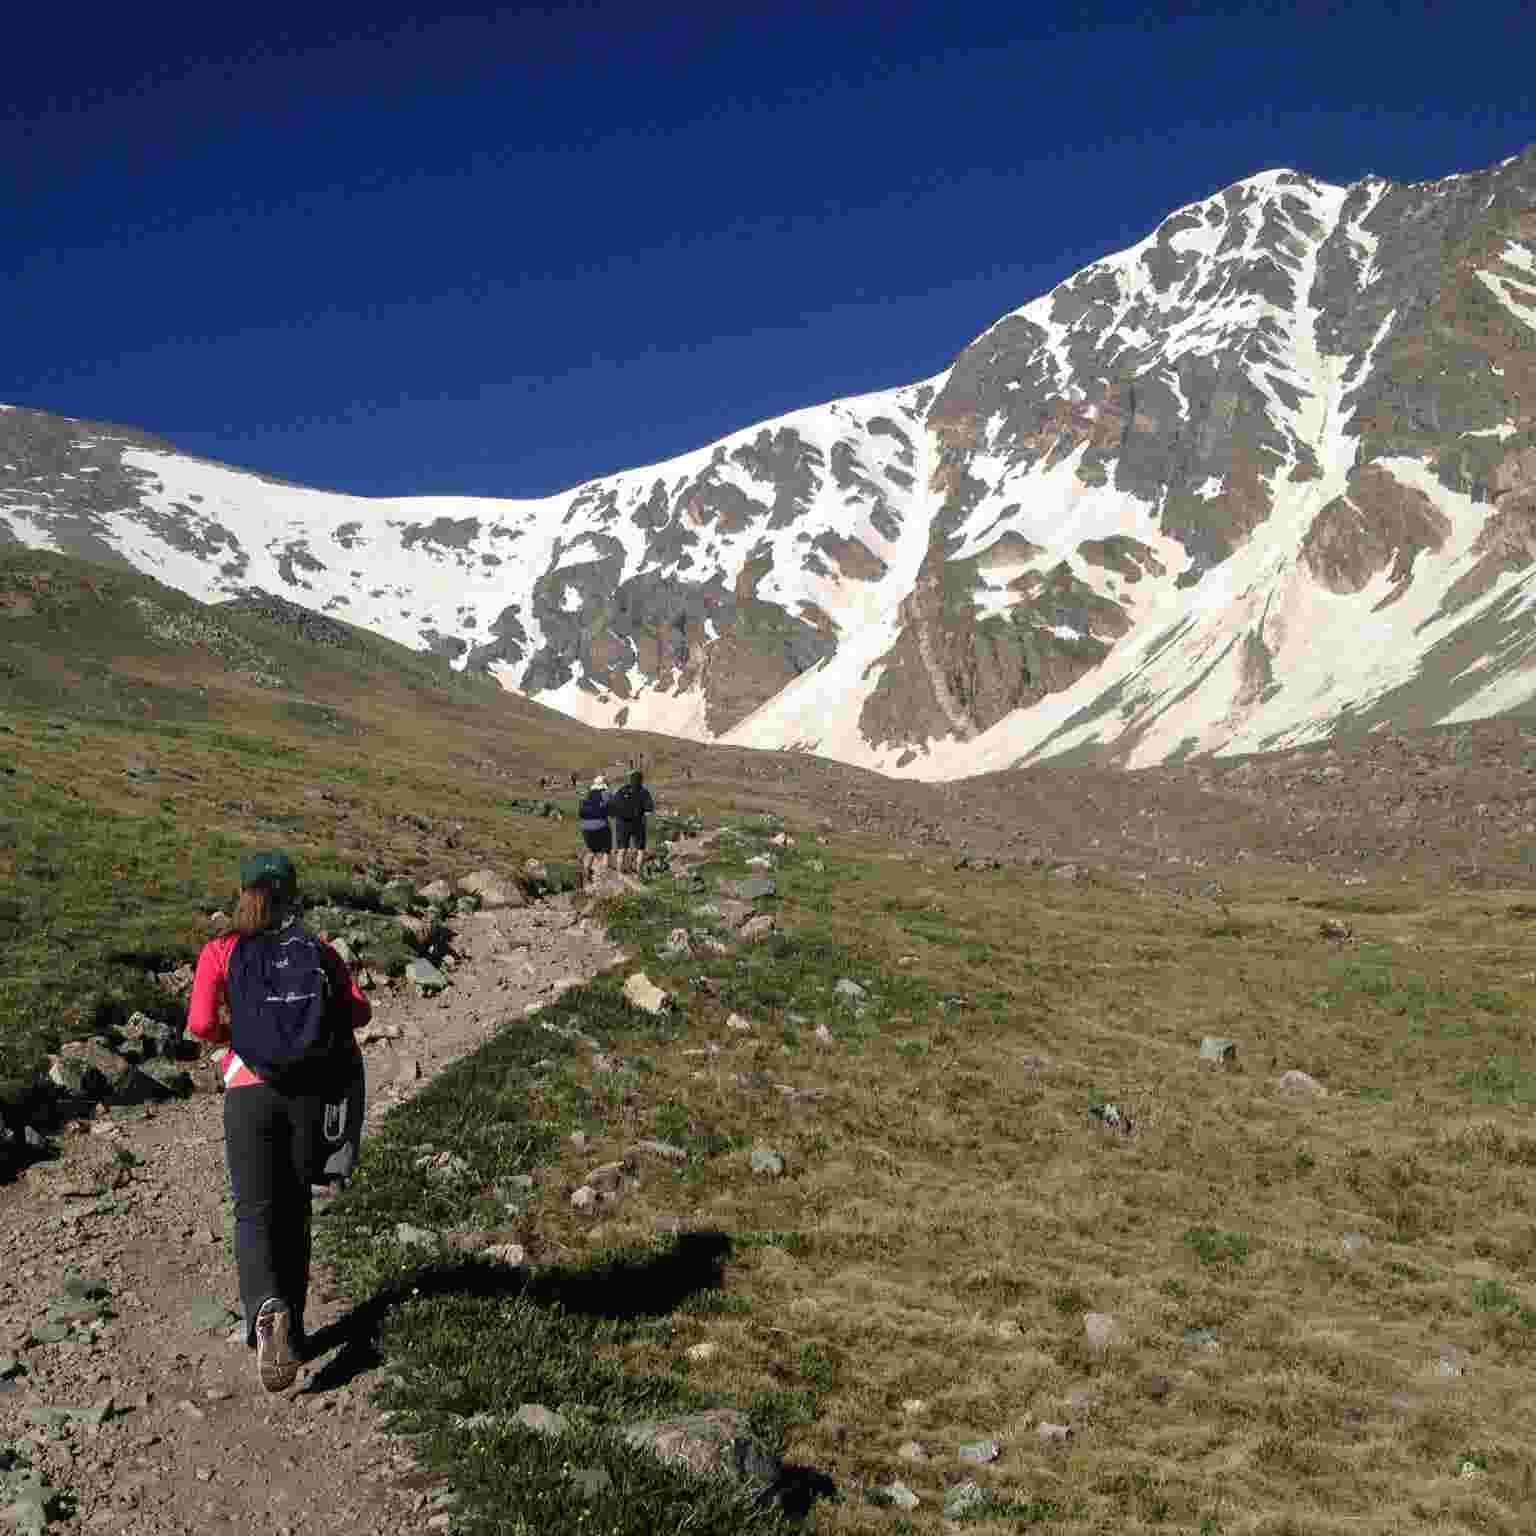 Safety tips for climbing 14ers